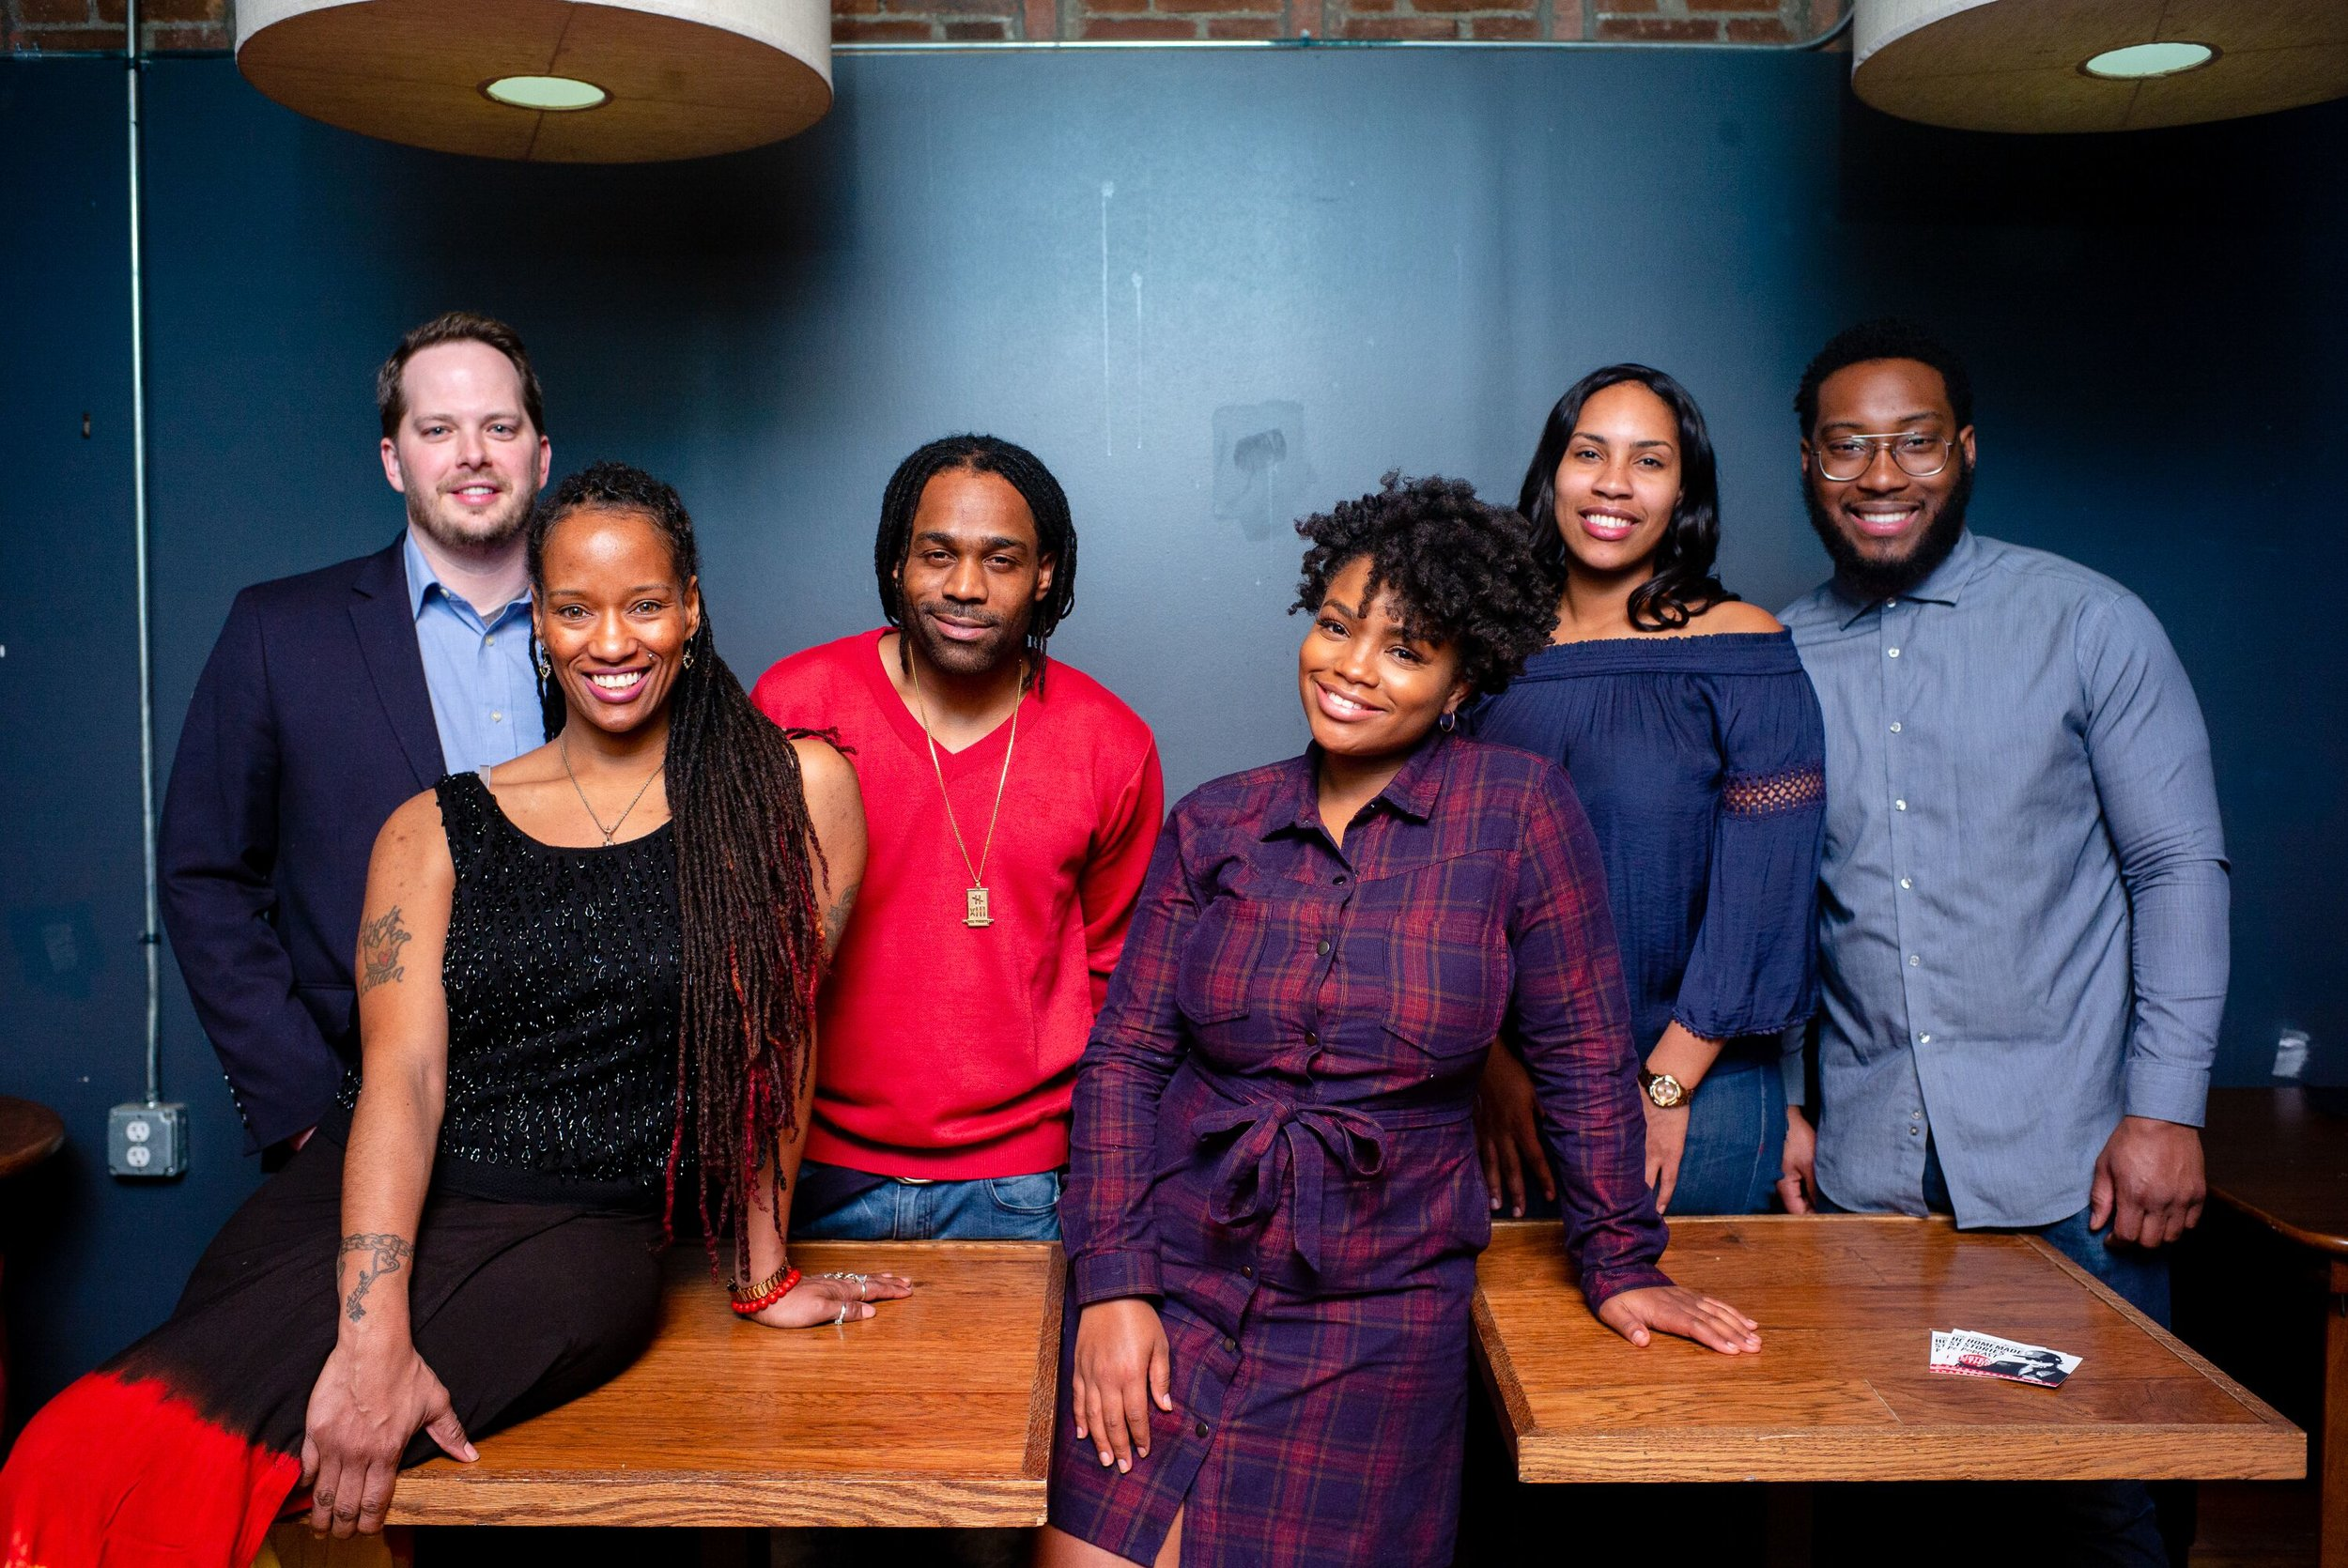 Pictured (left to right): Mark Kiel, Charese L. Howard, Clement Brown, Jr., Autumn Kyles, Victoria Washington and Daniel A. Washington. Photo by Stephen Koss.